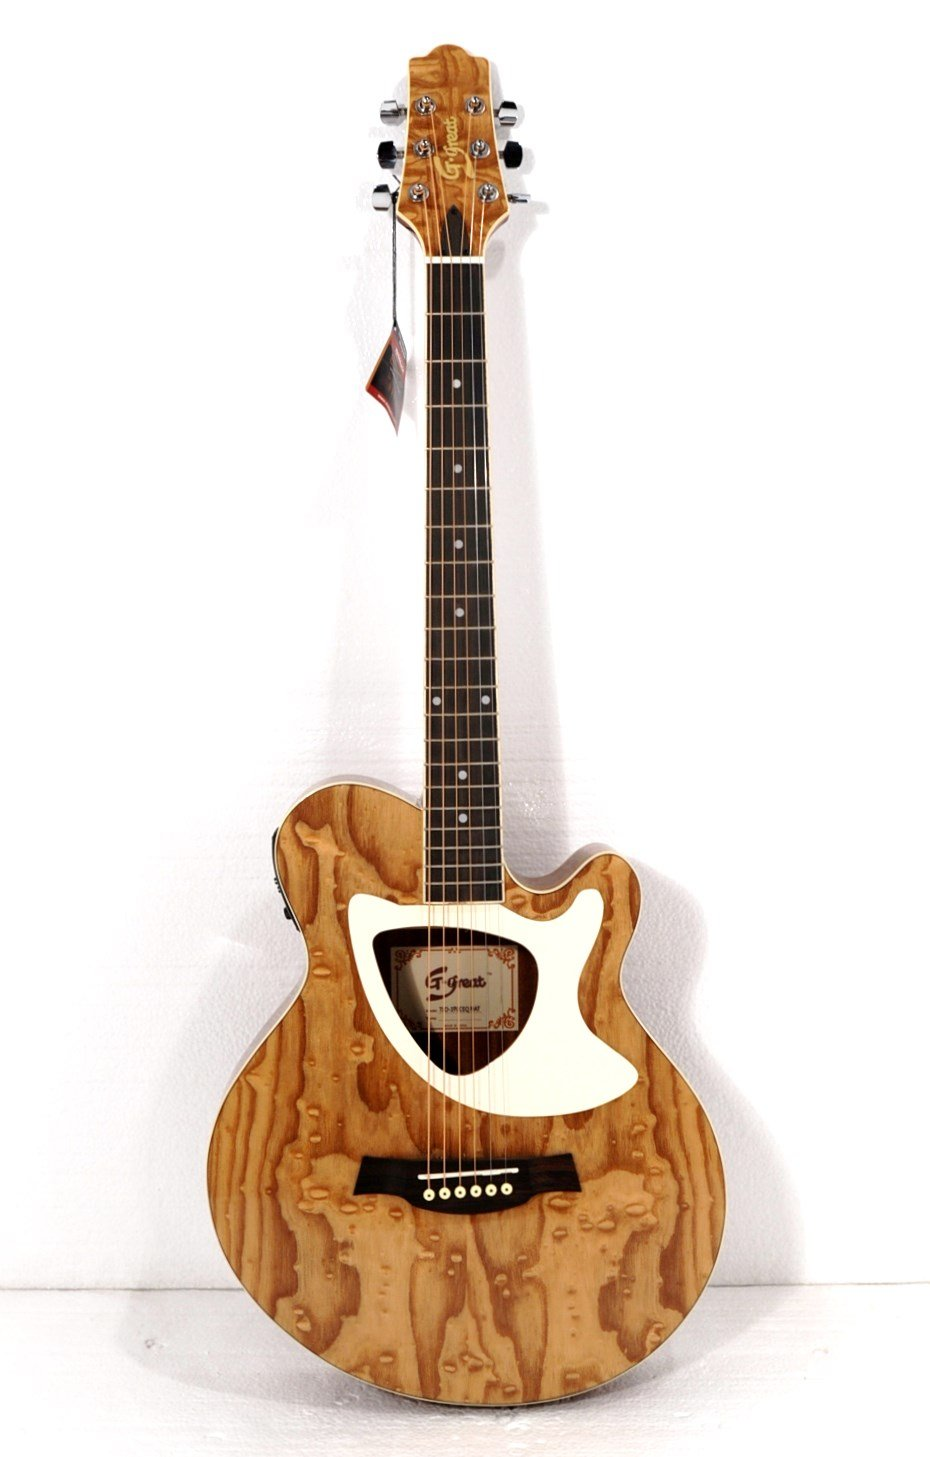 Acoustic Electric Cutaway Guitar, Thin Body, Built-In Tuner by G.great (Image #1)